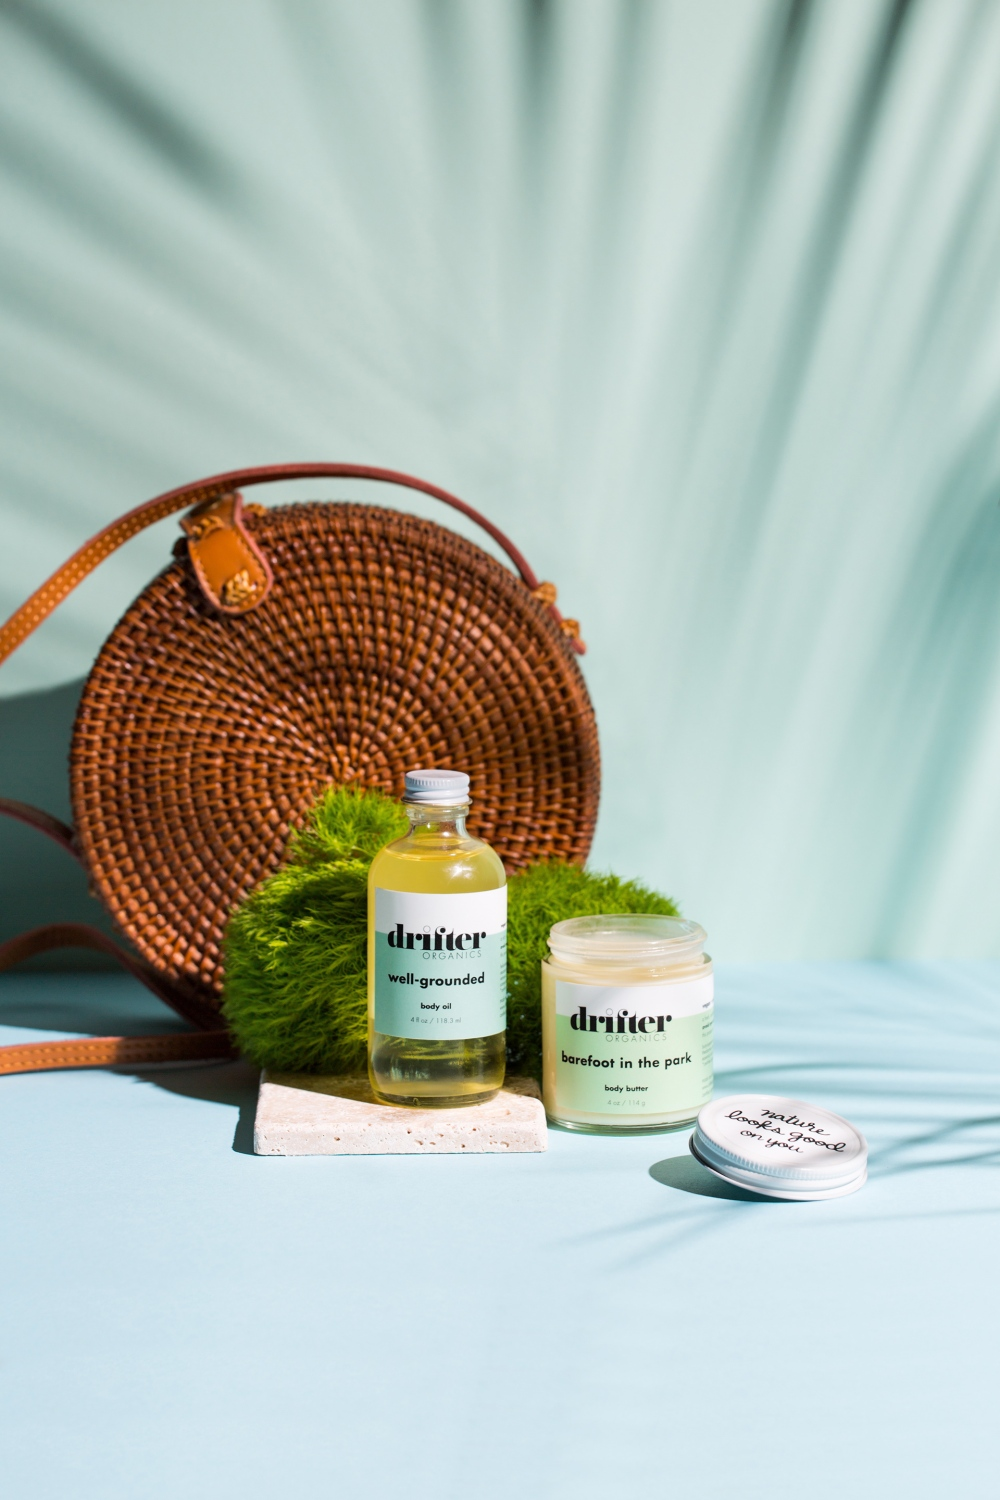 Styling and Photography by Naomi Julia Satake for Drifter Organics